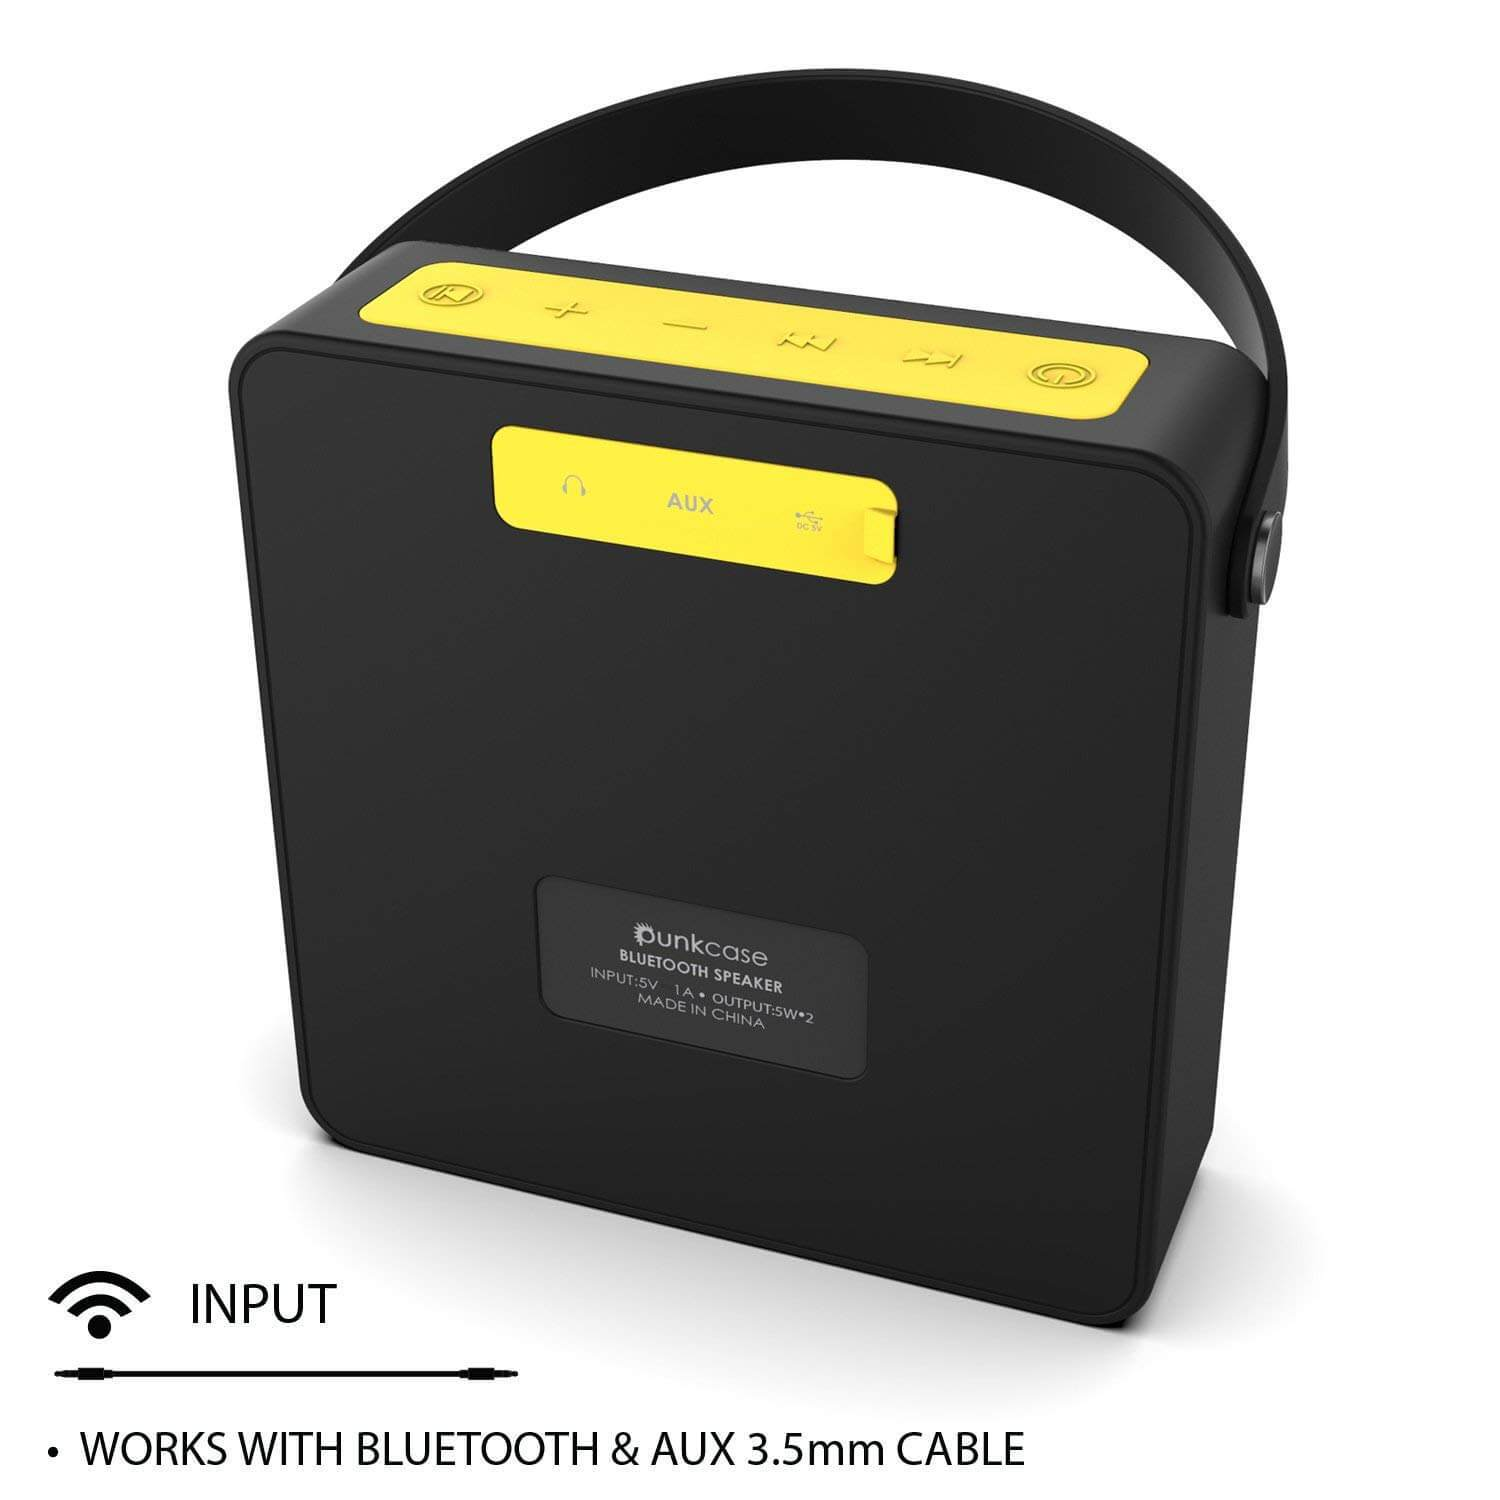 PUNKBOX Portable Wireless Bluetooth Speaker, Loud & Powerful for iPhone/Android [black]